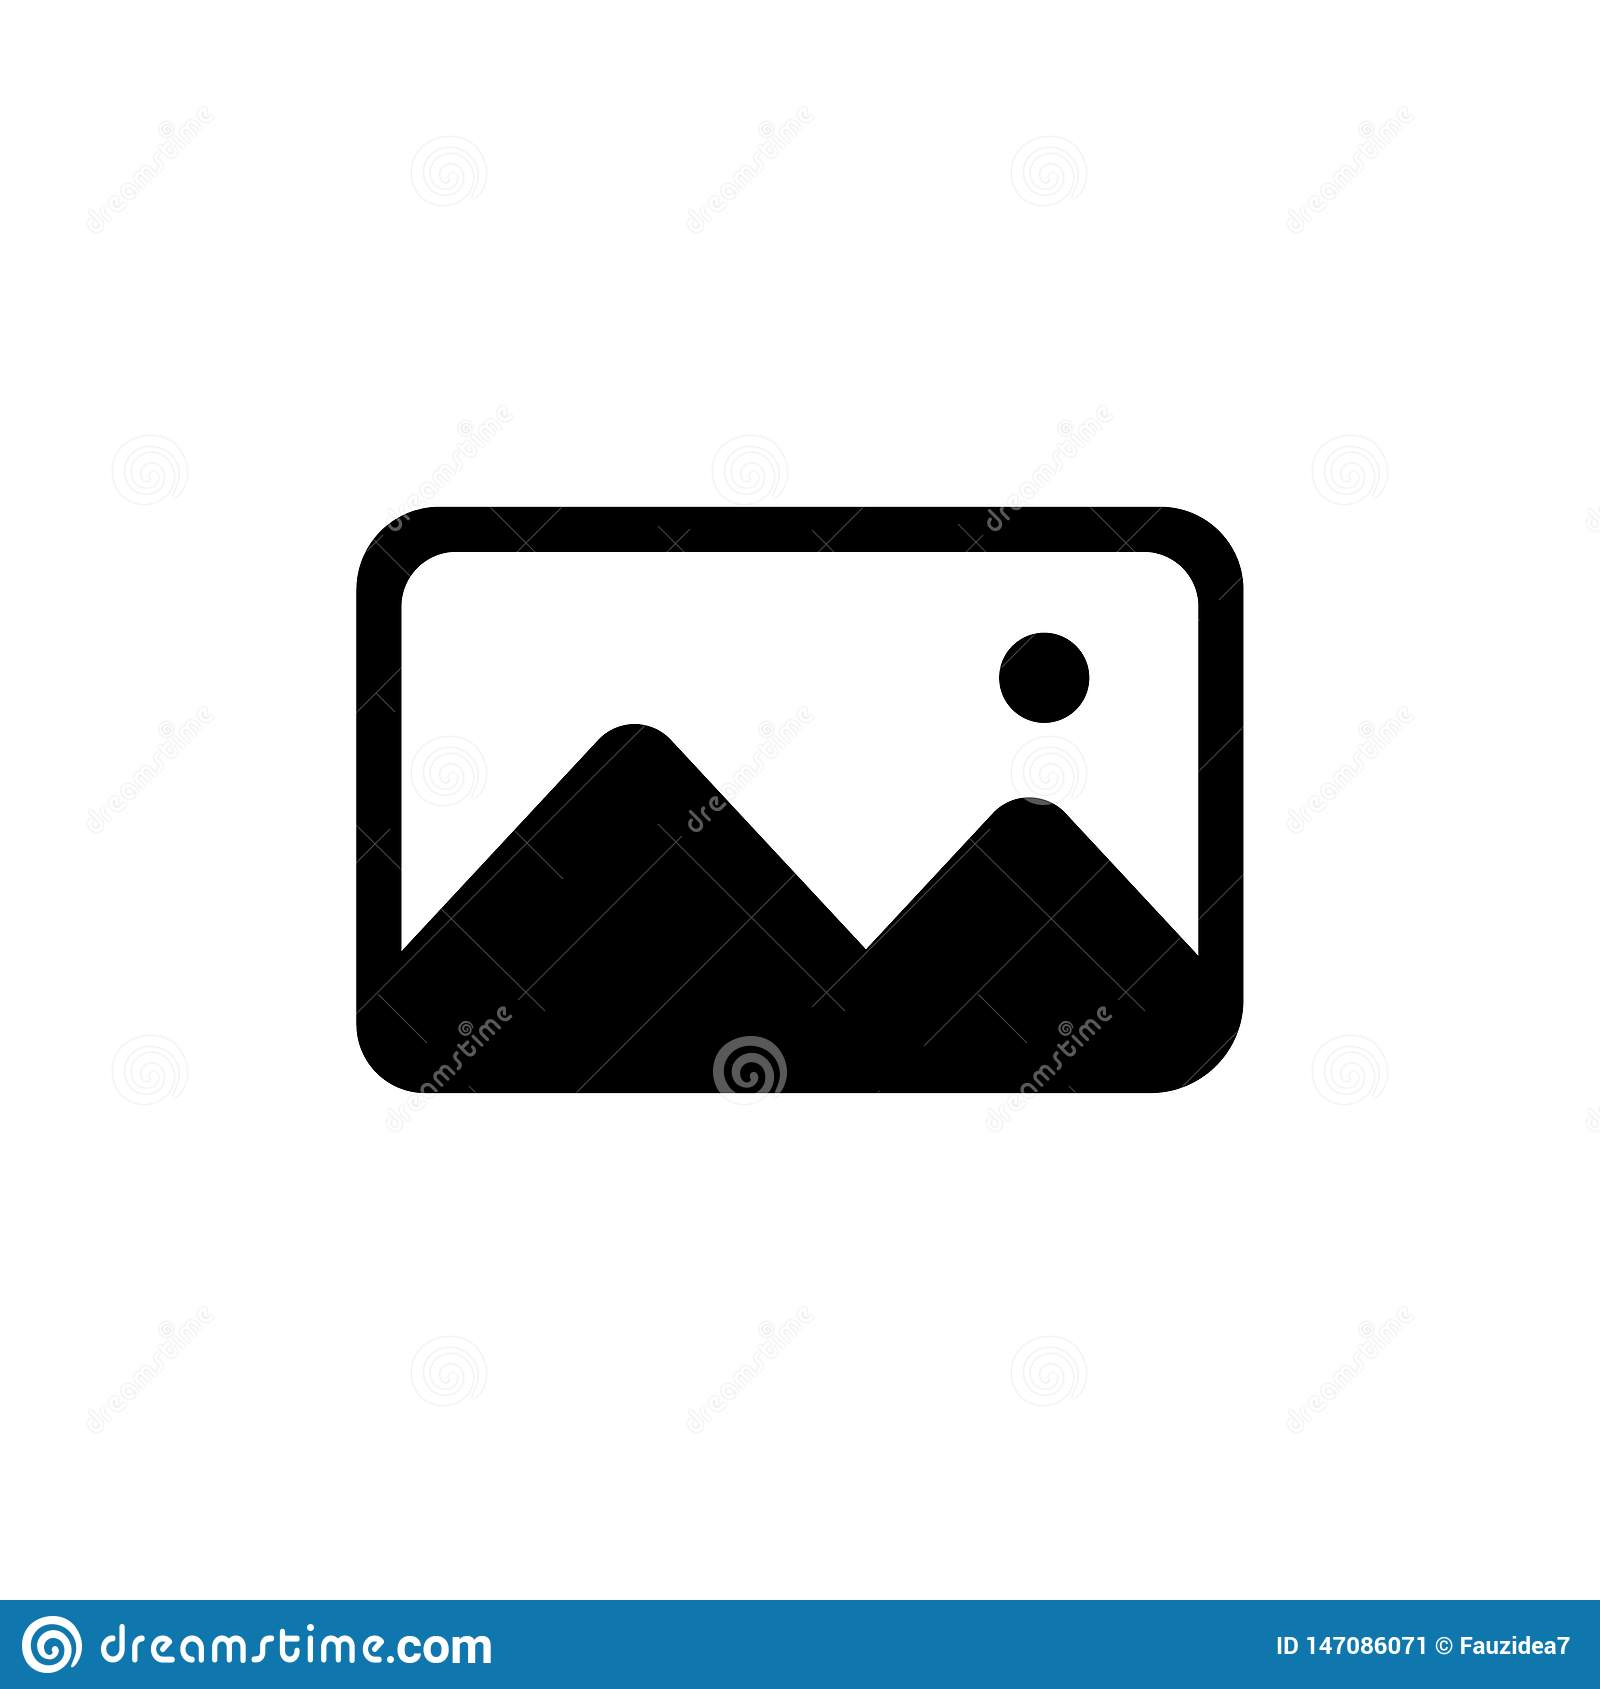 Vector illustration of solid image icon. Photo icon